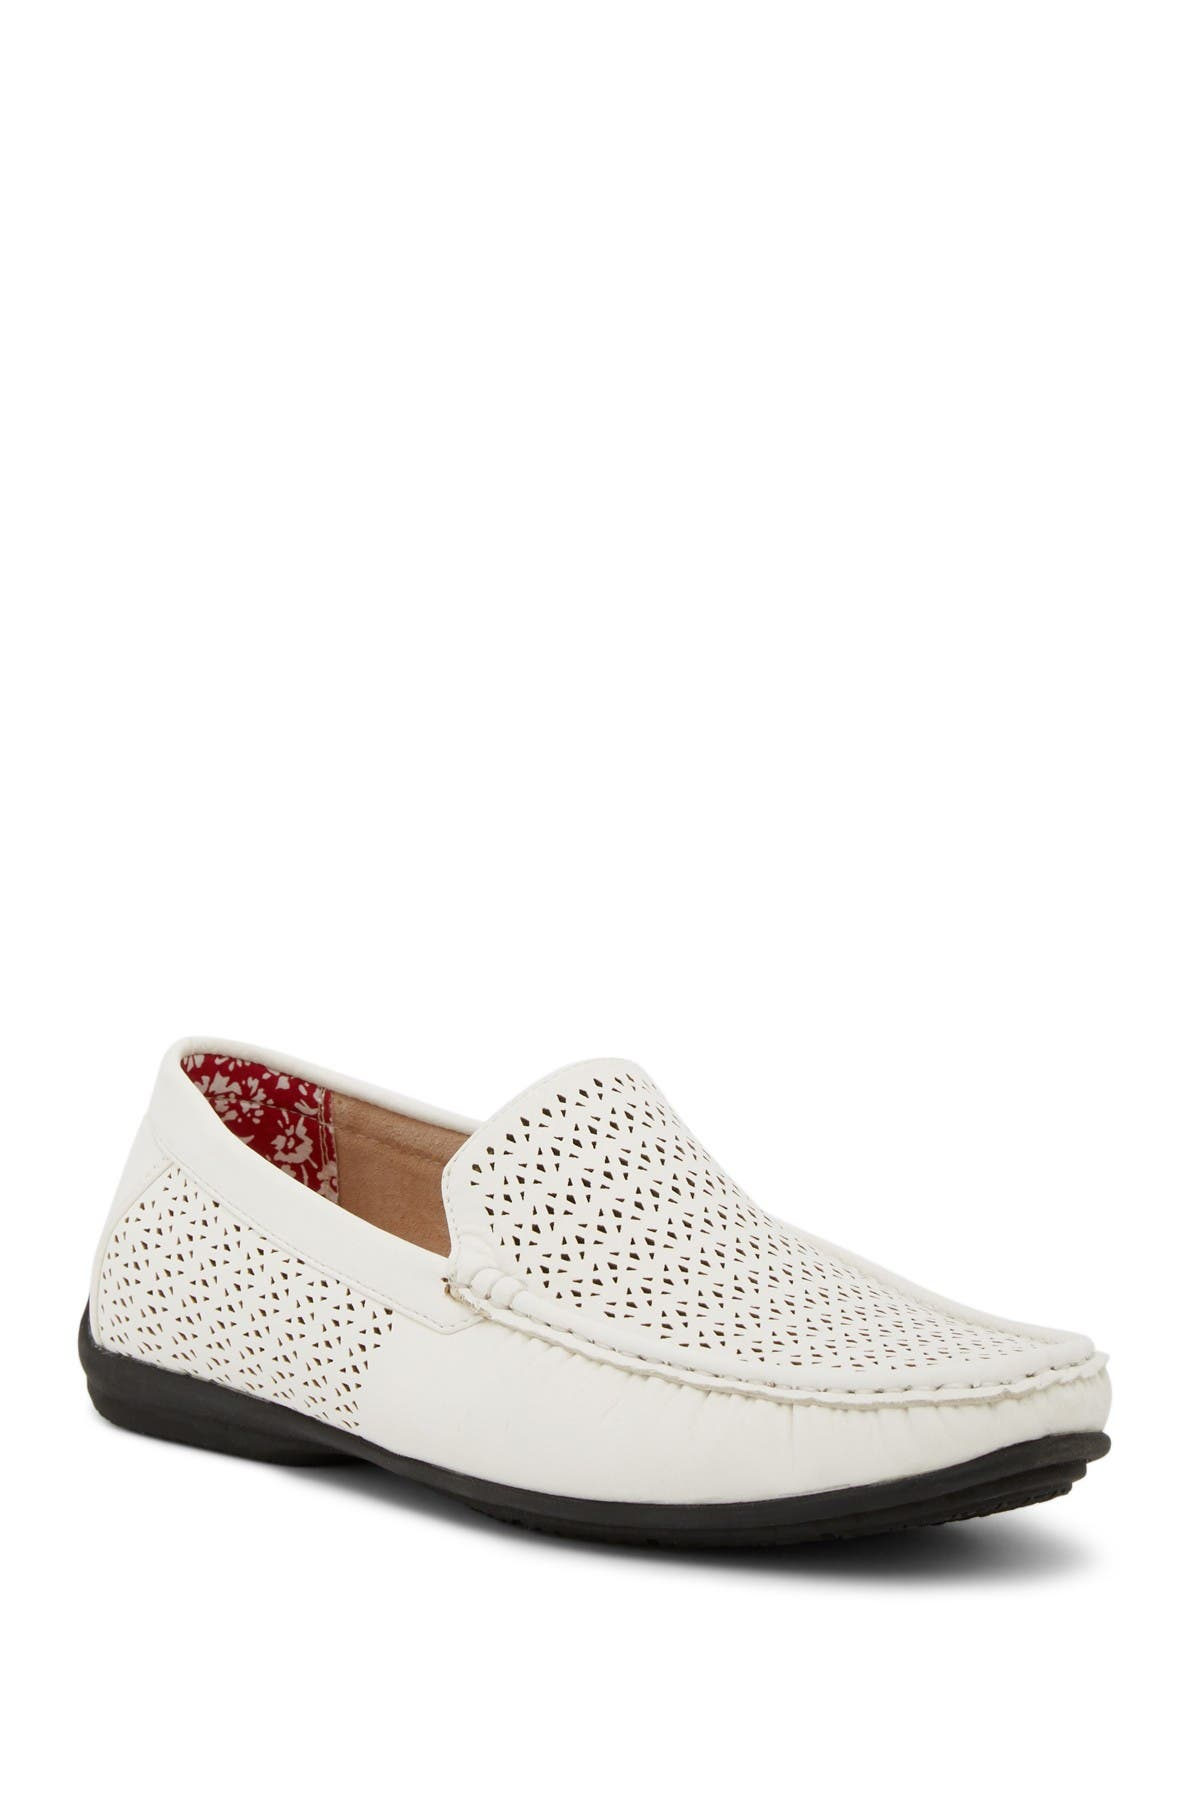 Image of Stacy Adams Cicero Loafer